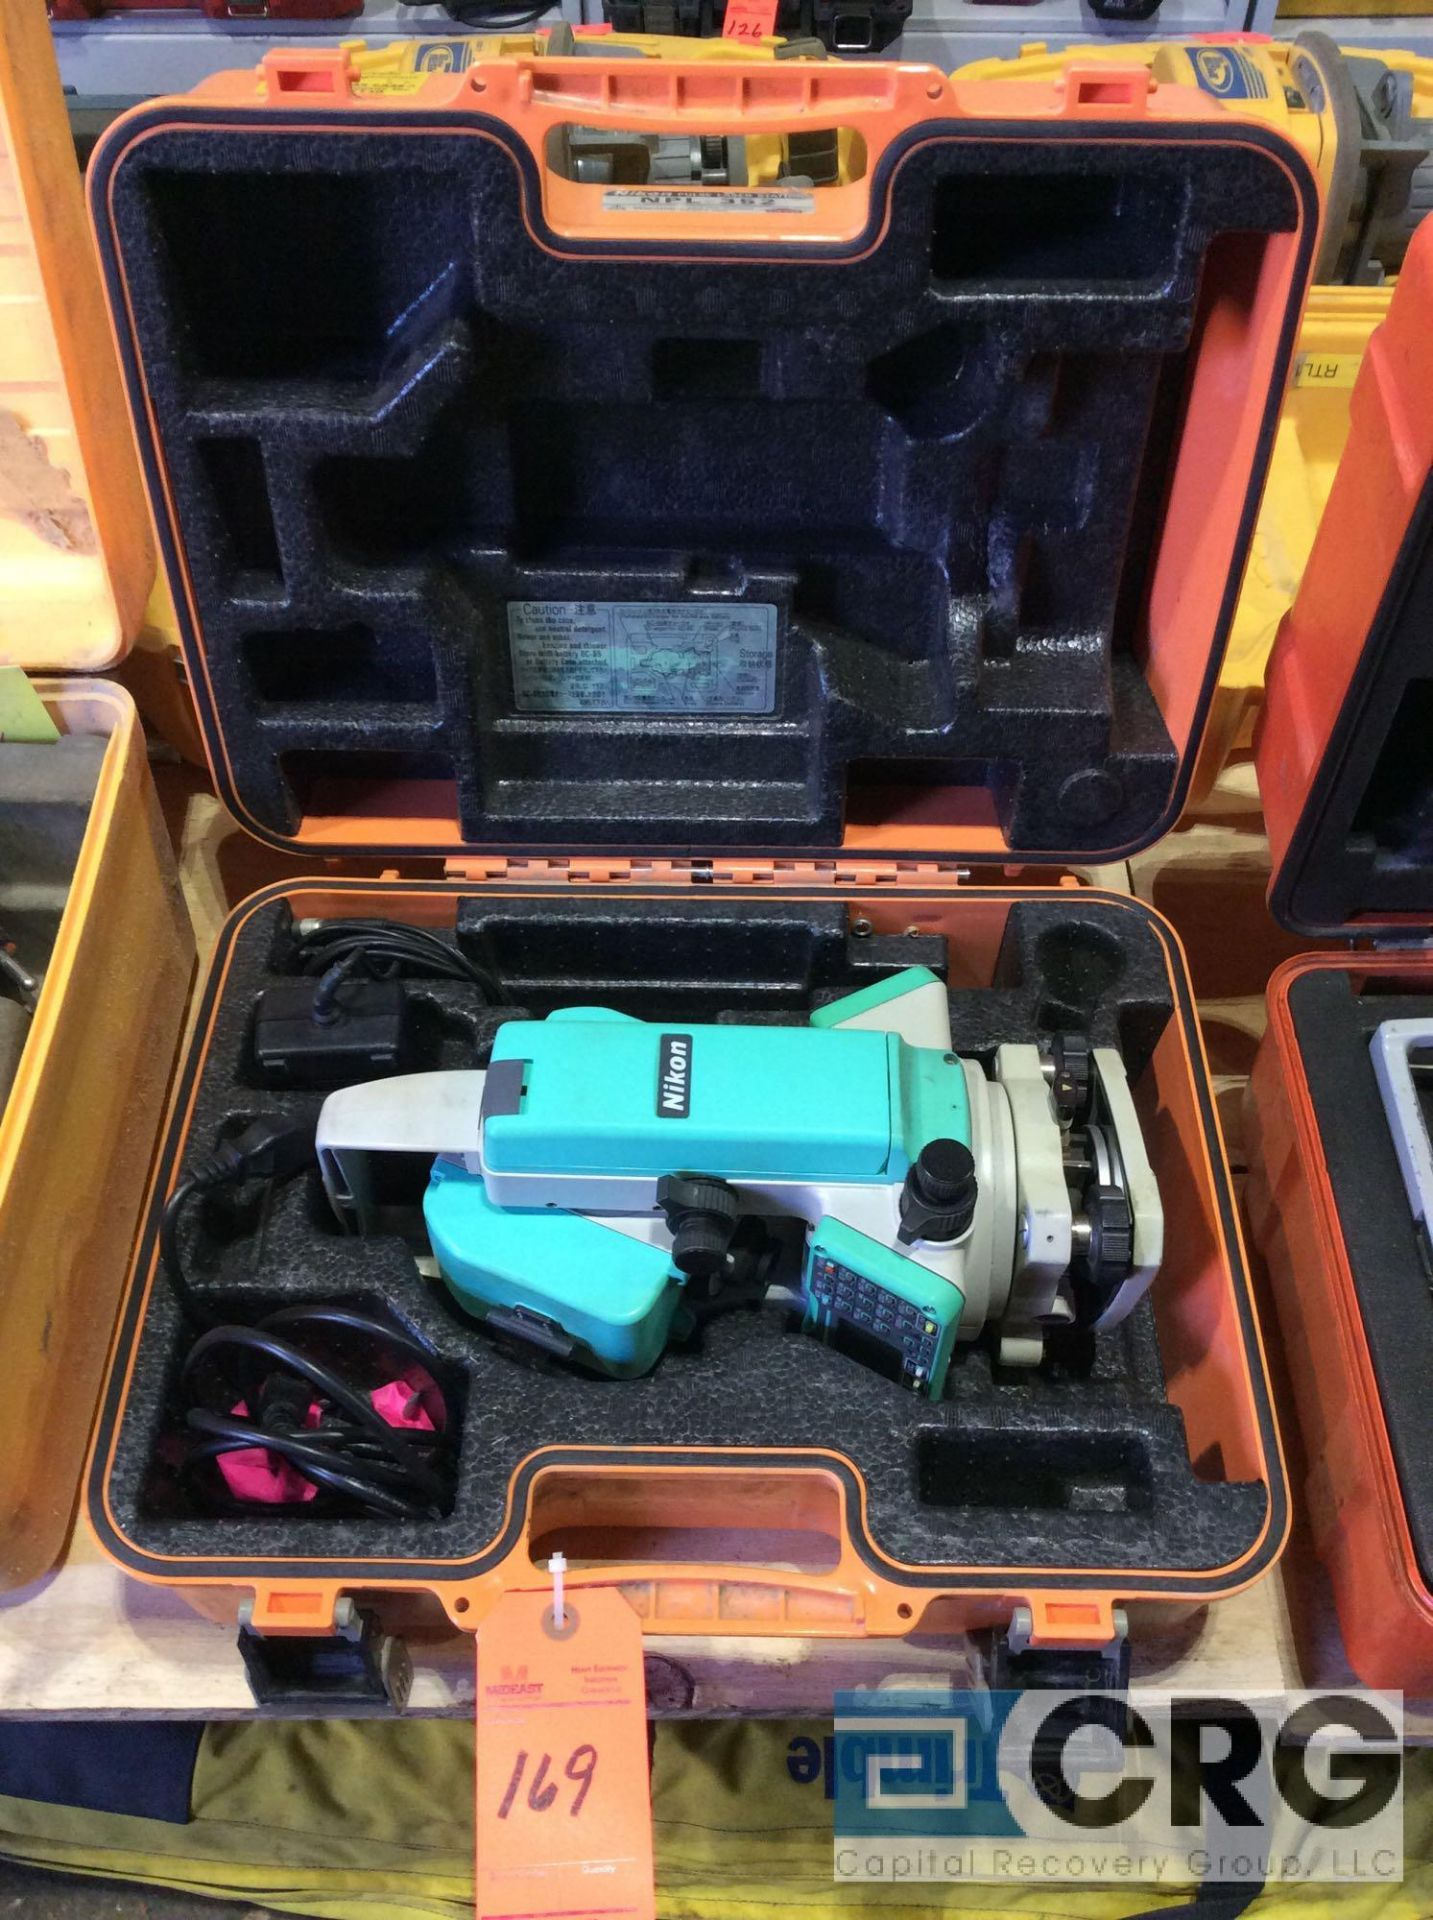 Lot 169 - Nikon NPL-352 electronic total station with case